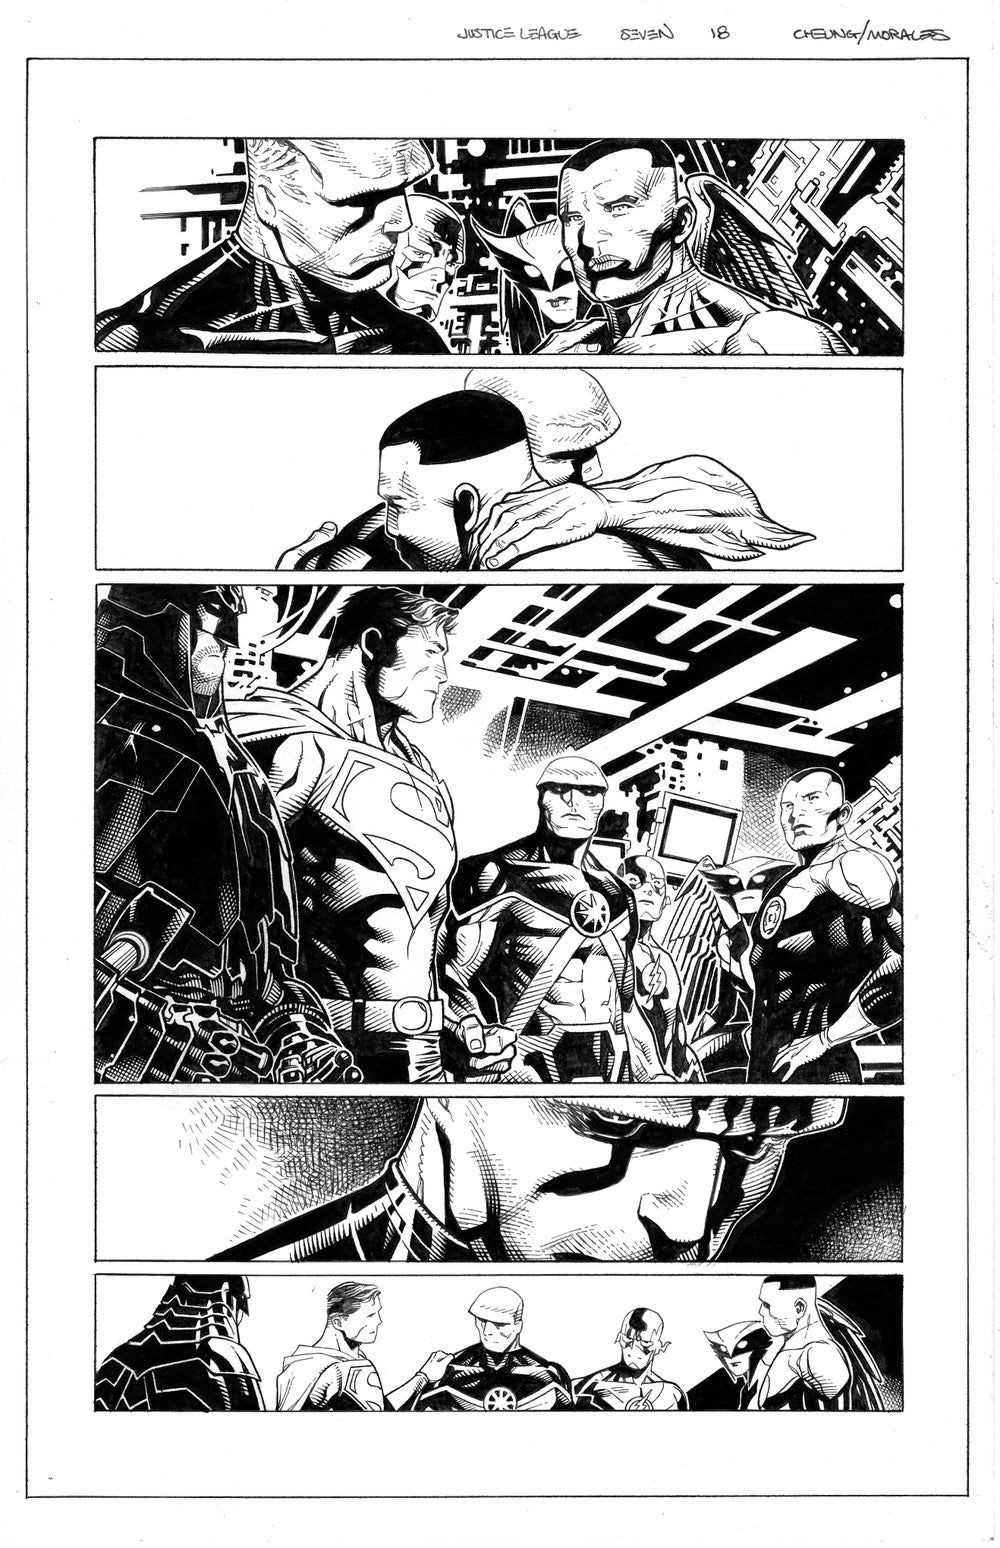 Image of JUSTICE LEAGUE #7 Page 18